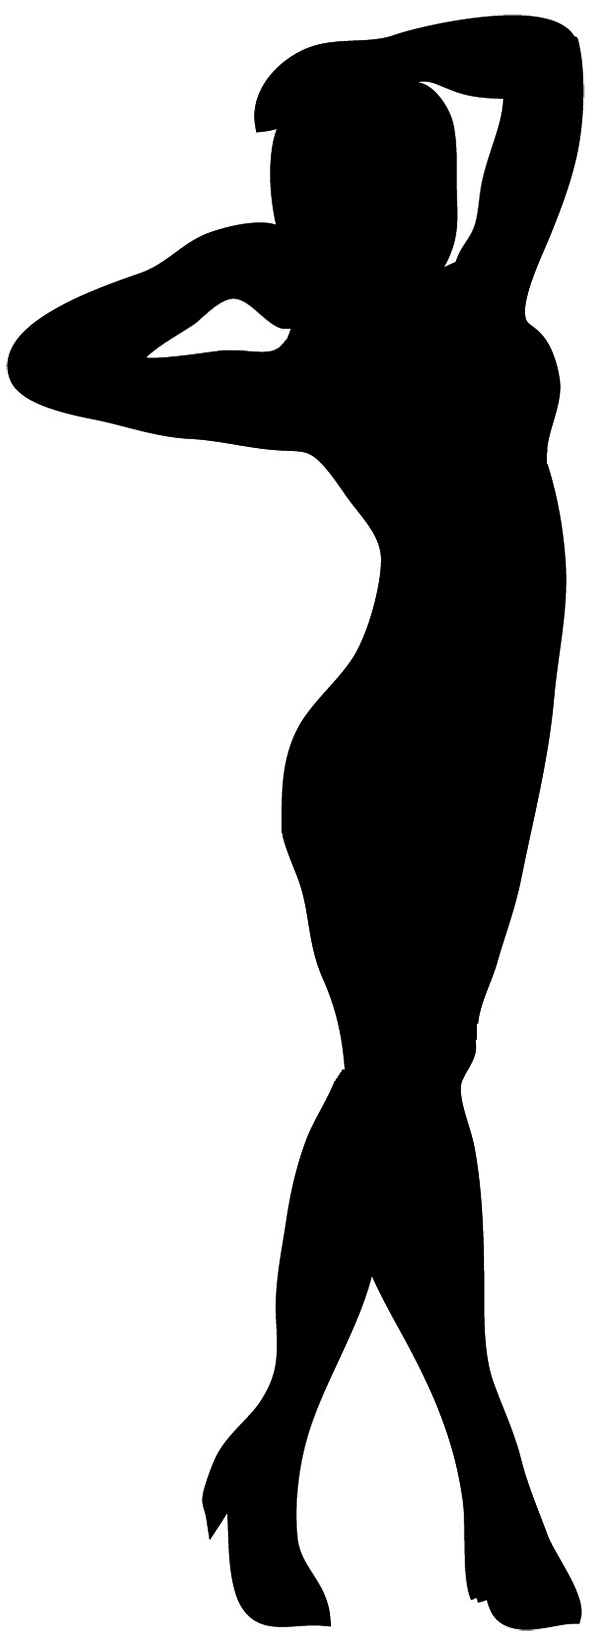 female silhouette standing woman black